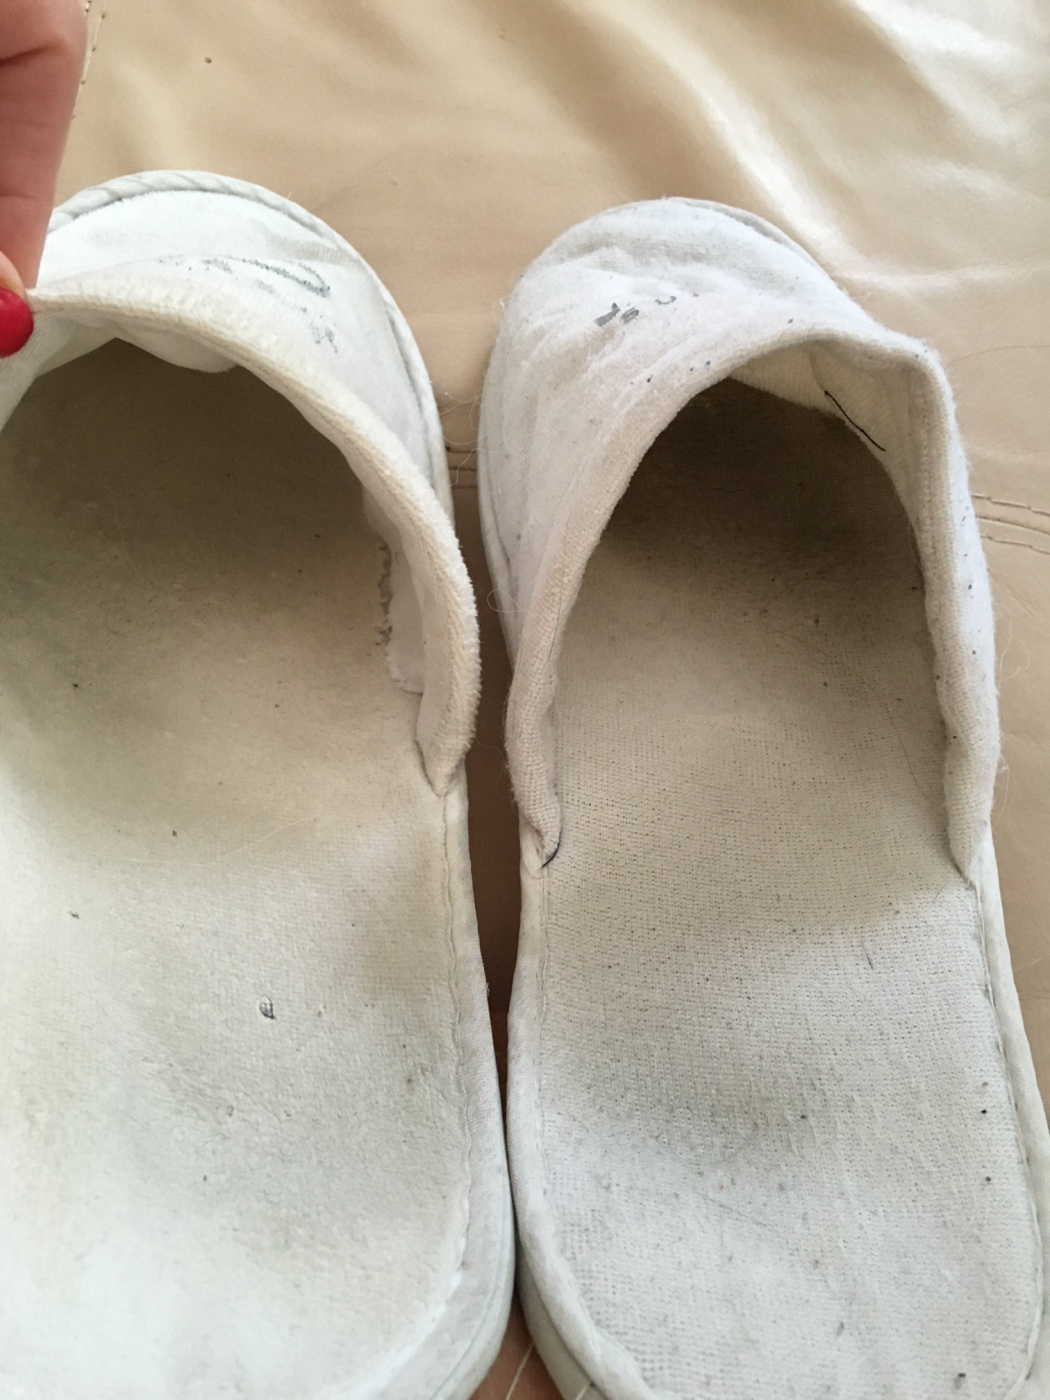 My well worn slippers - 1